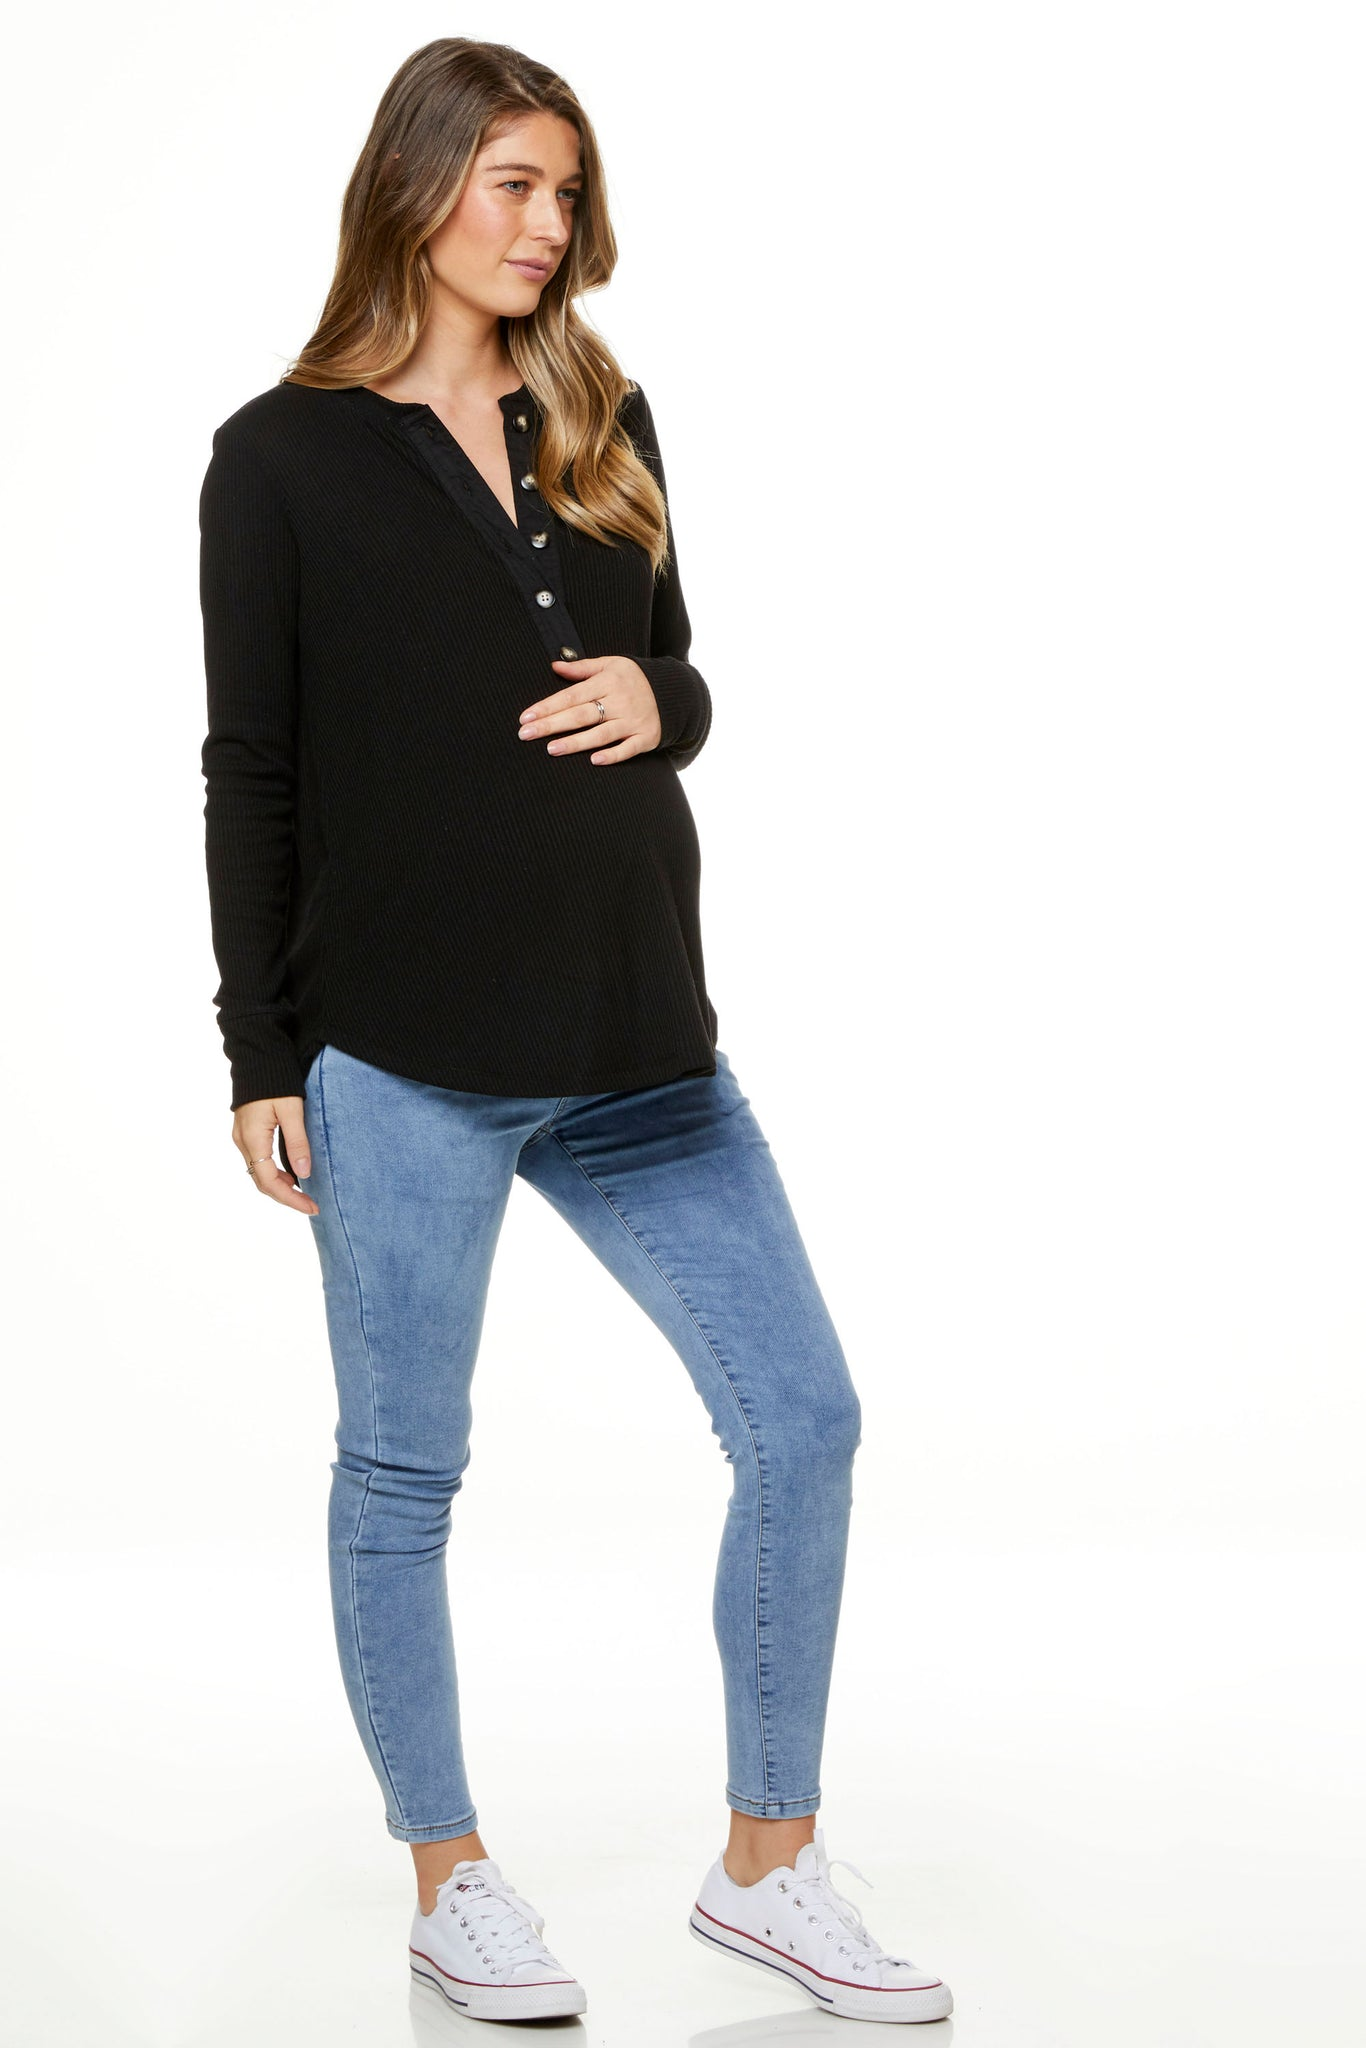 Maternity Top Black Image 4